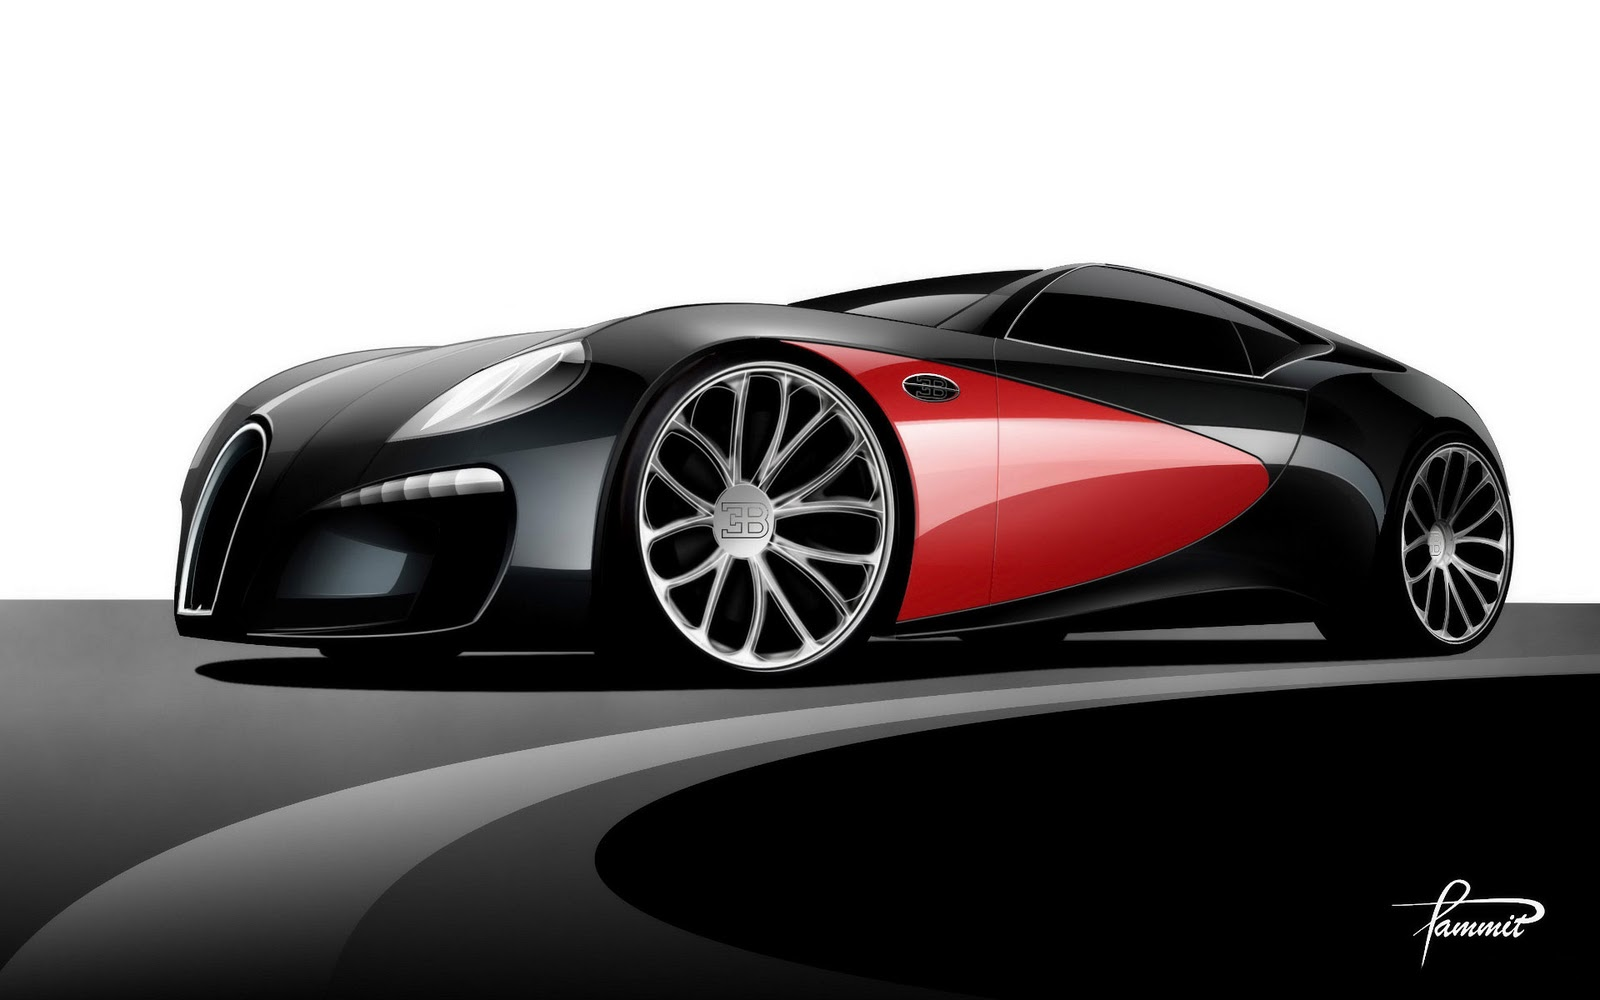 ANIMATION: Concept Cars Wallpapers